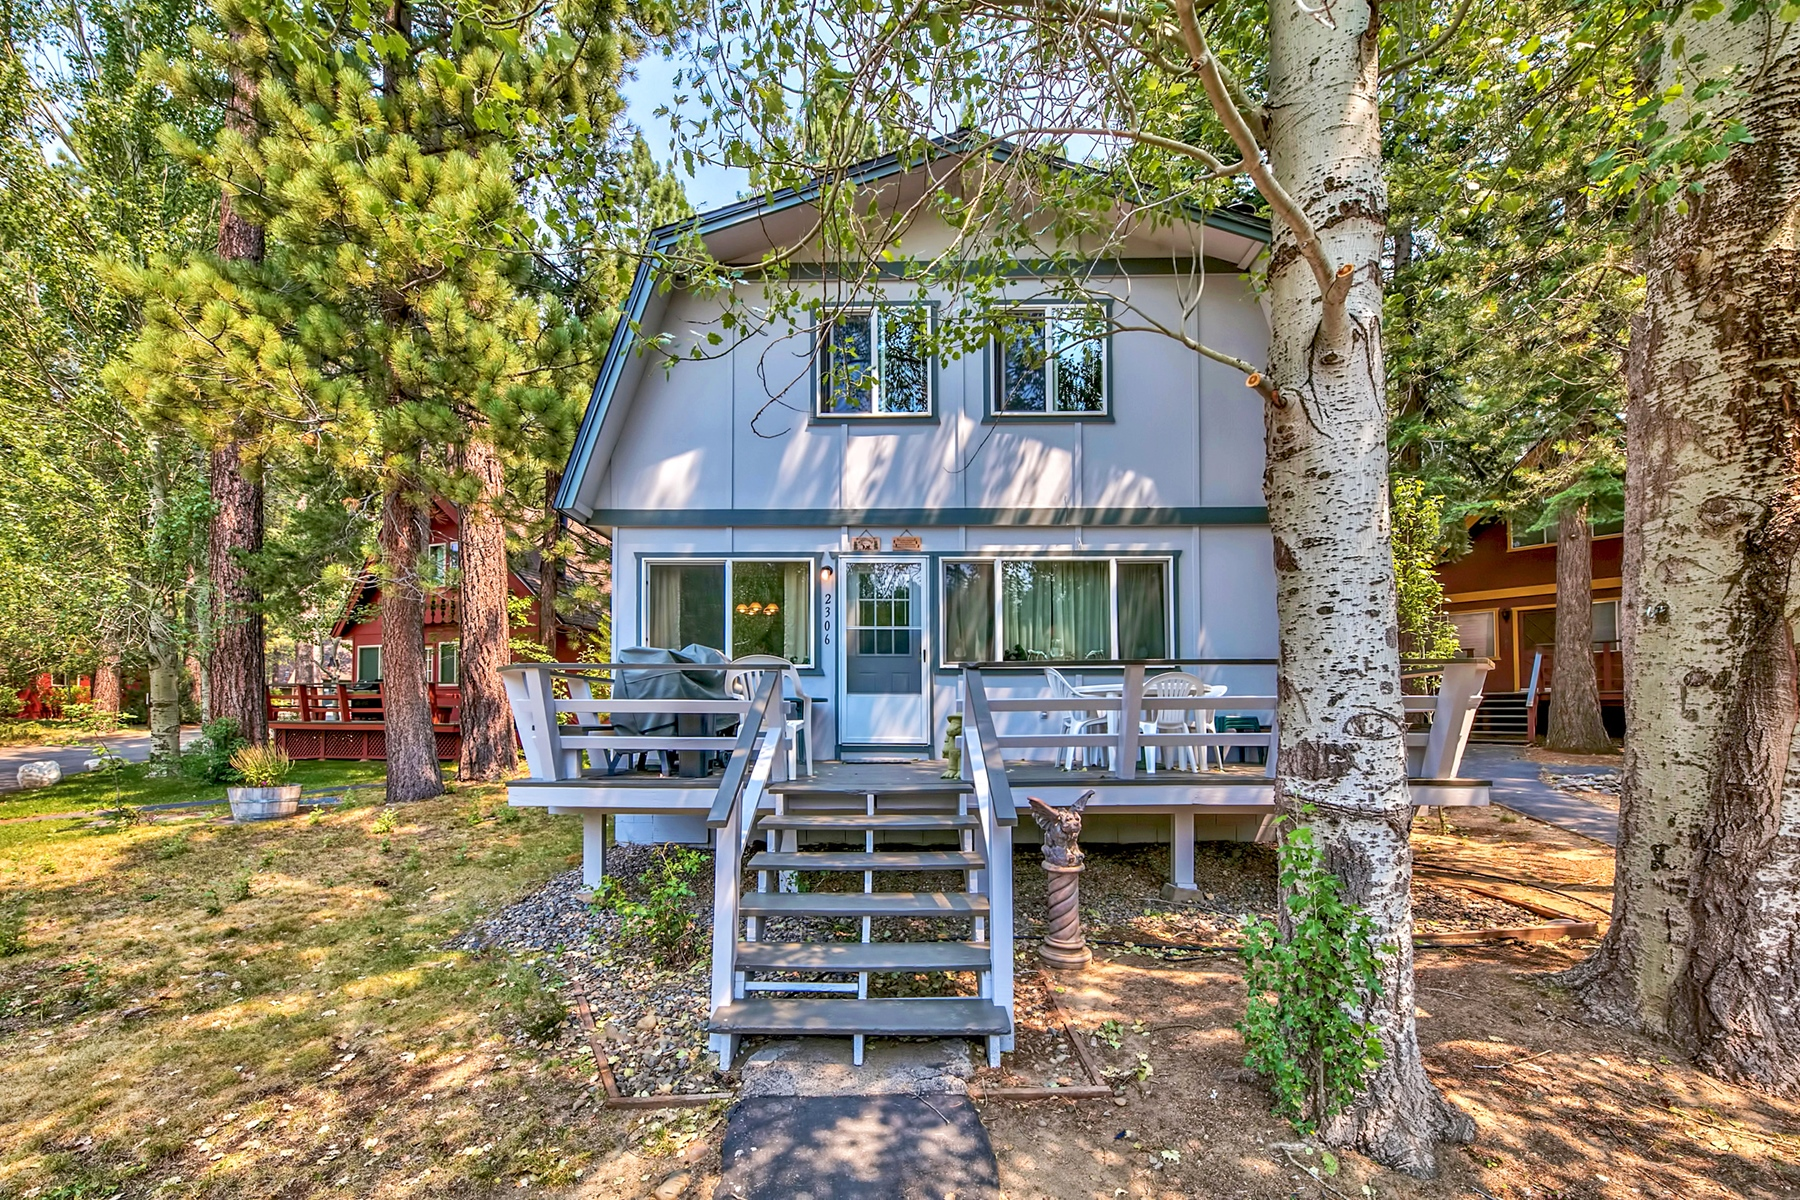 Single Family Home for Active at 2306 Sky Meadows, South Lake Tahoe, CA 96150 2306 Sky Meadows South Lake Tahoe, California 96150 United States